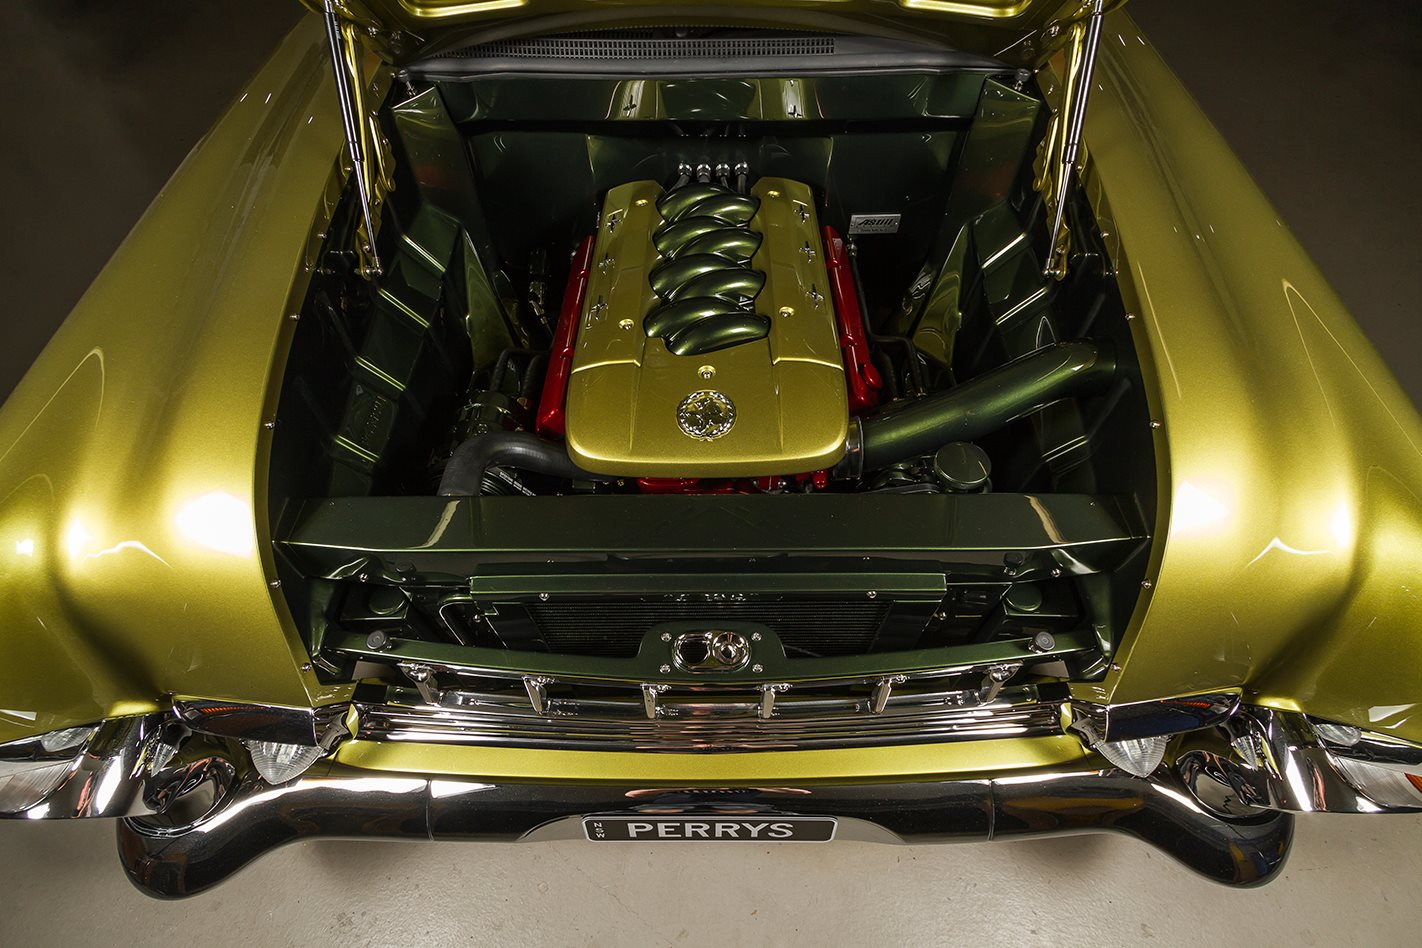 Holden FB Tailspin engine bay